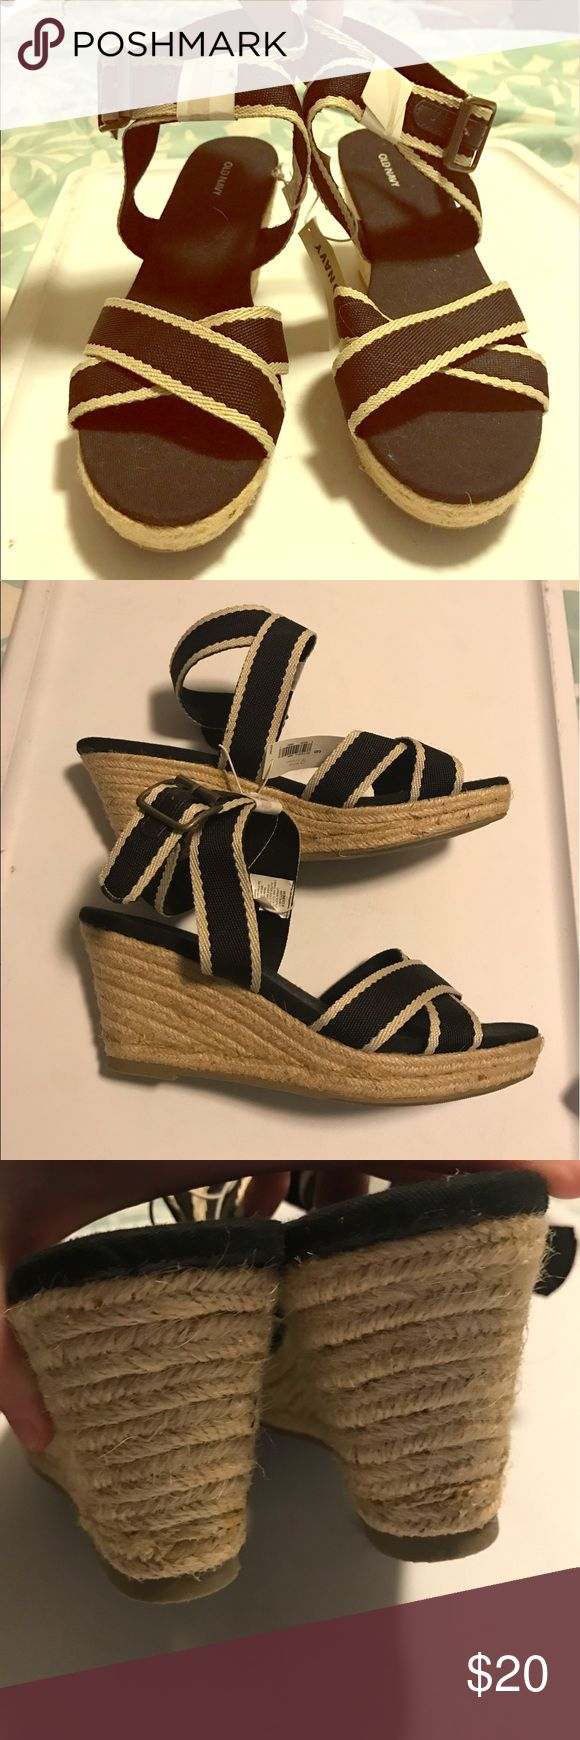 NWT black and white strappy wedge heels New with tags! Old Navy black and white wedge heels.  Rope like detail on heels. Really cute for summer. Excellent condition! Old Navy Shoes Wedges